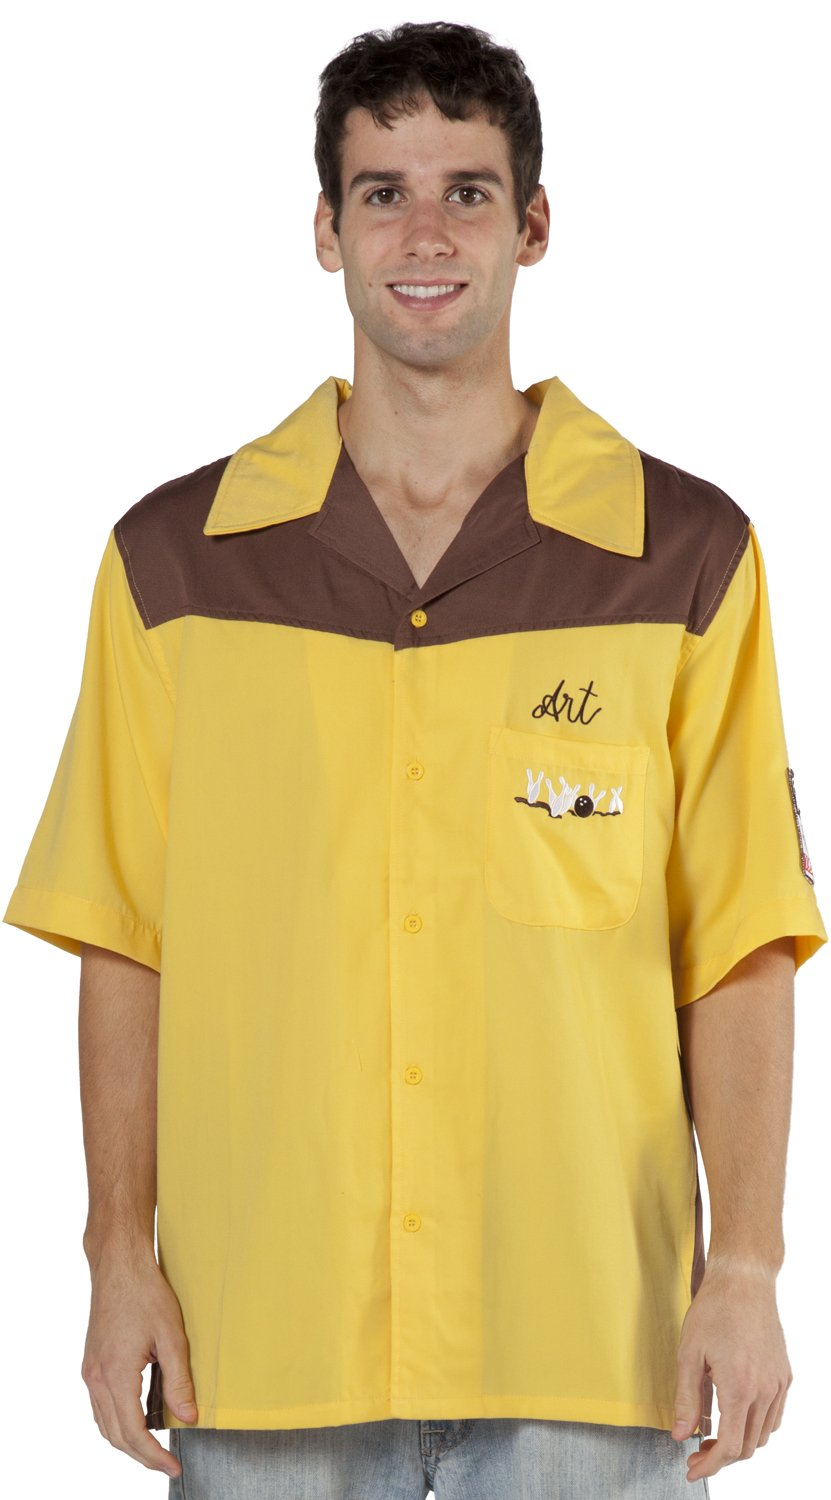 Authentic Replica Big Lebowski Bowling Shirt